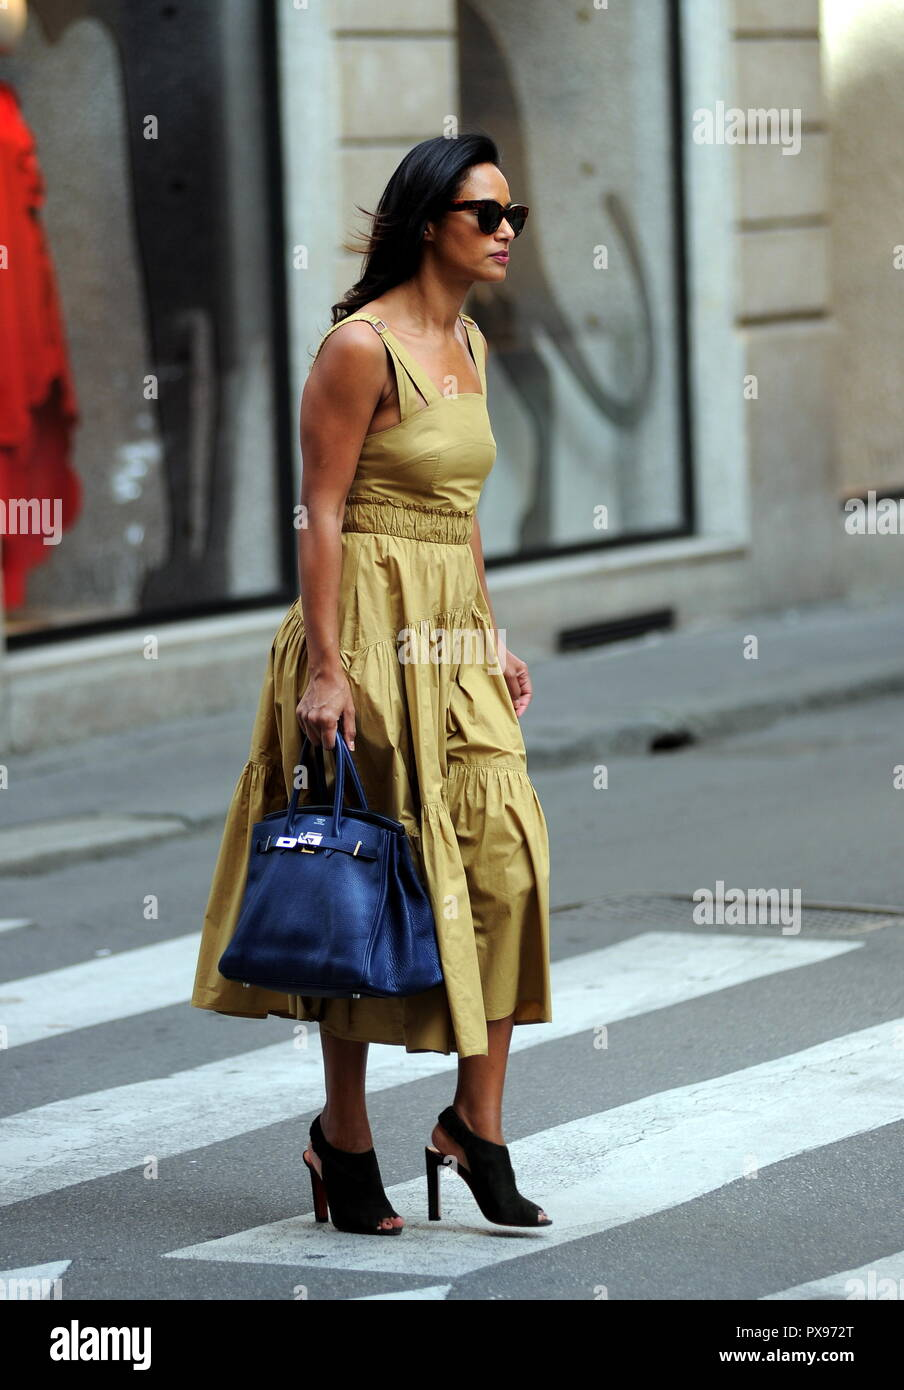 Milan, Rula Jebreal walking in the center of Rula Jebreal, the Palestinian journalist and writer of Israeli citizenship, naturalized and resident in Italy, amazed by the streets of the center. Here it is, dressed very elegantly, walking in via Montenapoleone. Stock Photo